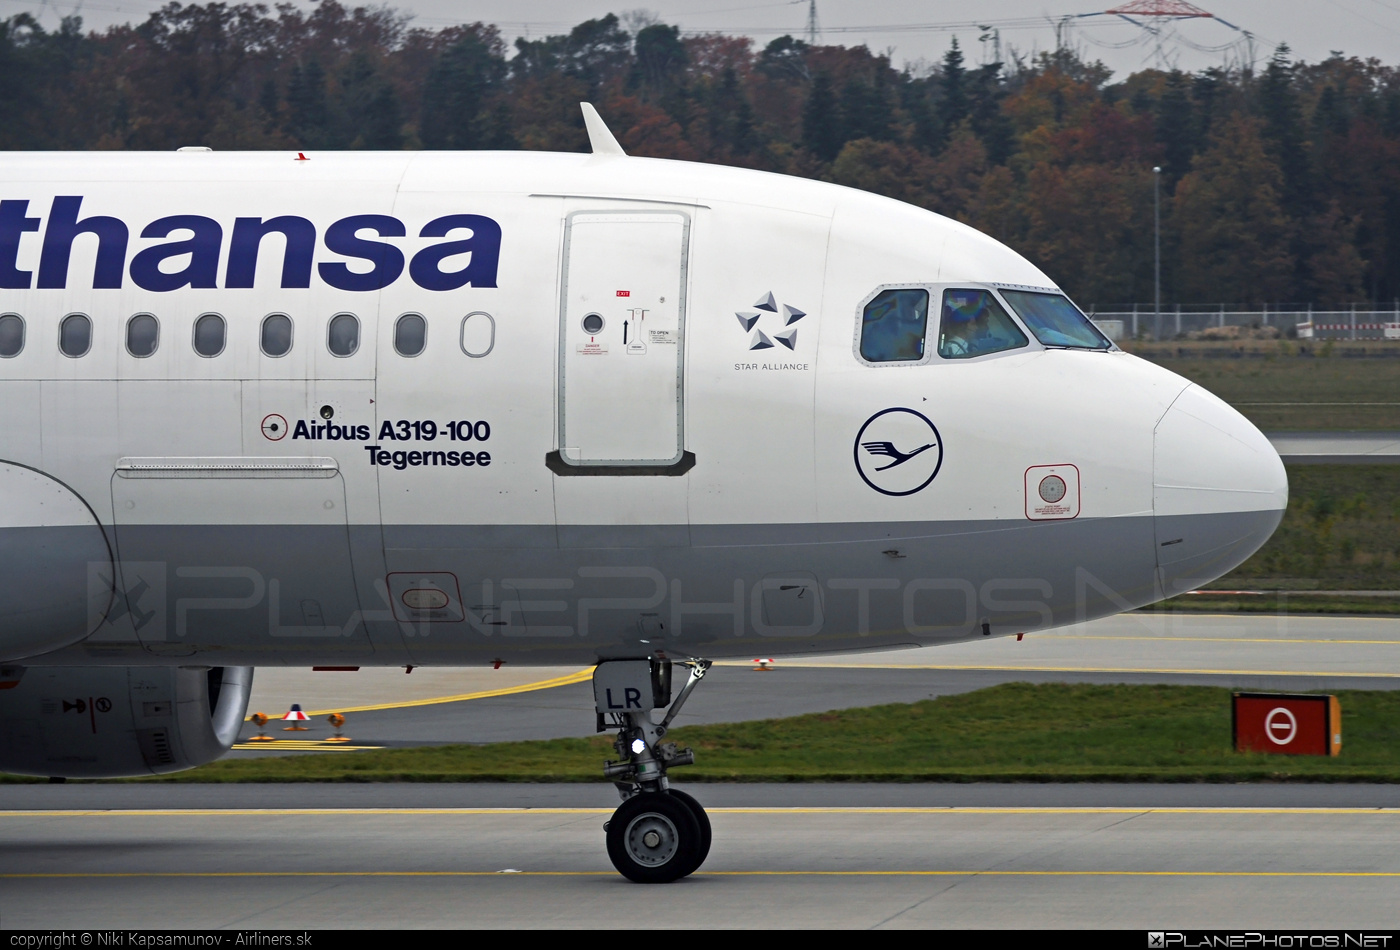 Airbus A319-114 - D-AILR operated by Lufthansa #a319 #a320family #airbus #airbus319 #lufthansa